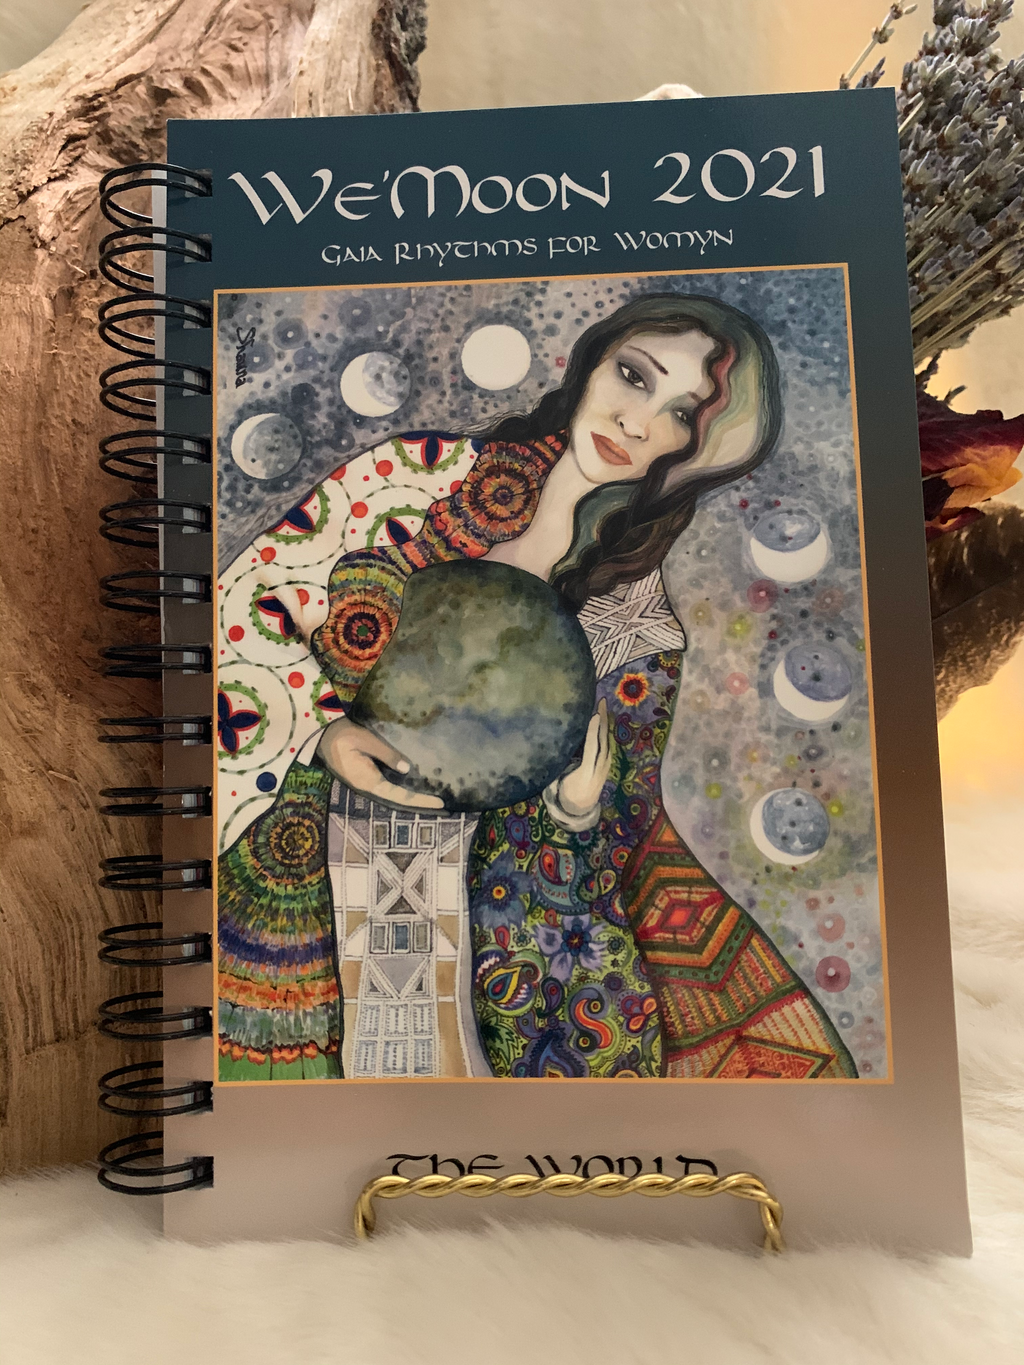 WEMOON, DATEBOOK, WE'MOON, CALENDAR, MOON PHASES, JOURNAL, YEAR, WHEEL OF THE YEAR, GAIA, RHYTHMS, WOMEN'S